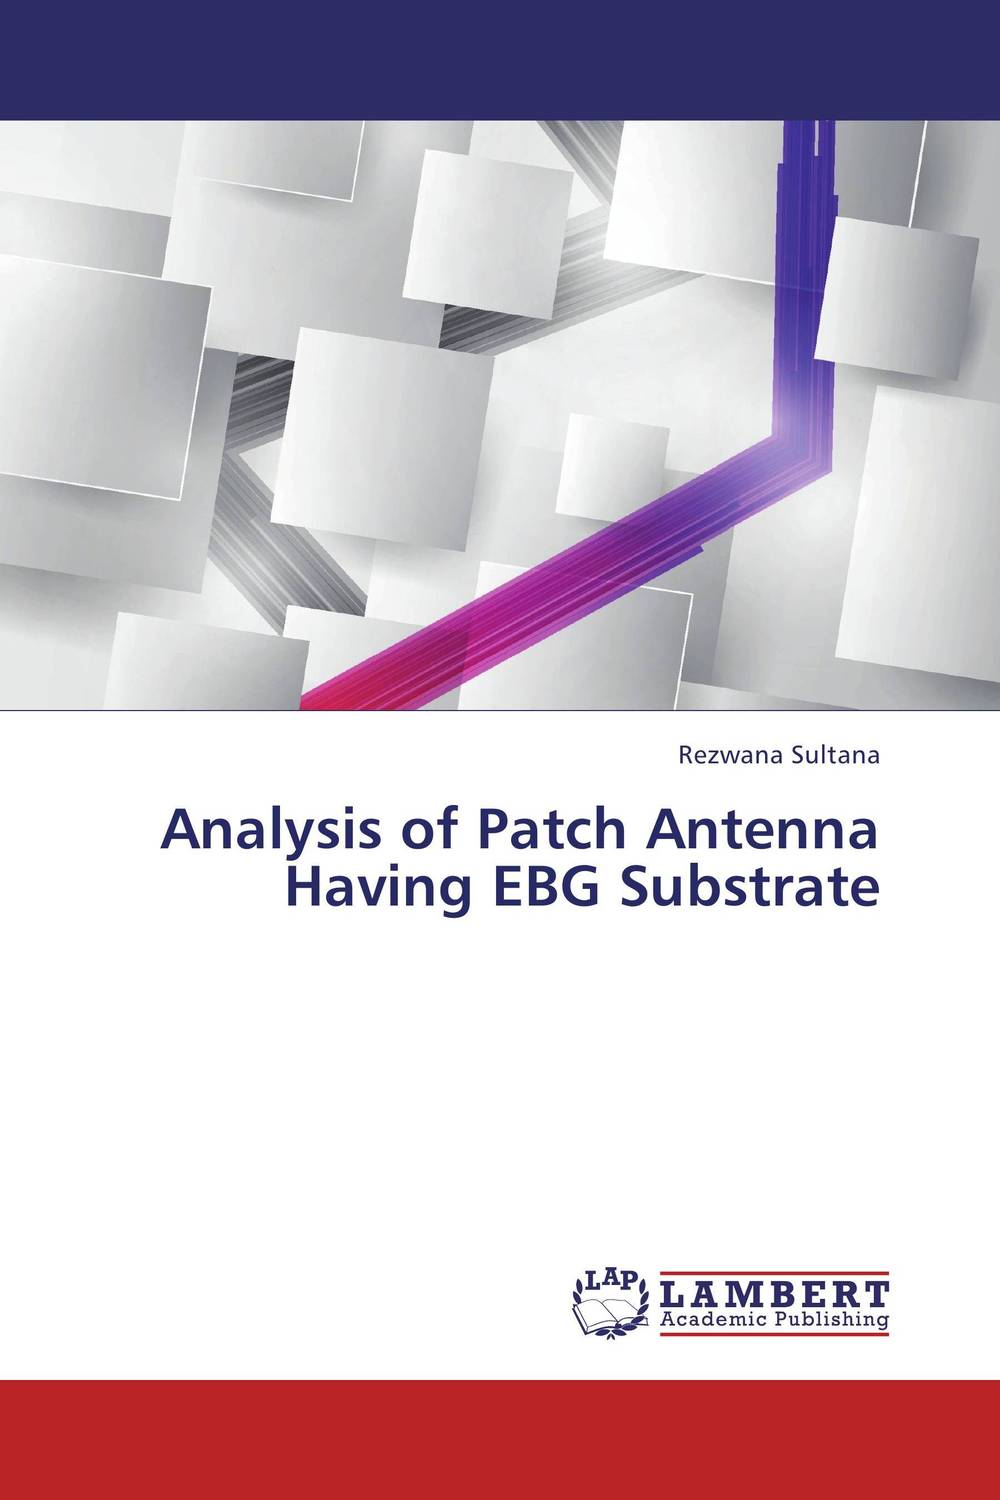 Analysis of Patch Antenna Having EBG Substrate simranjeet kaur amaninder singh and pranav gupta surface properties of dental materials under simulated tooth wear